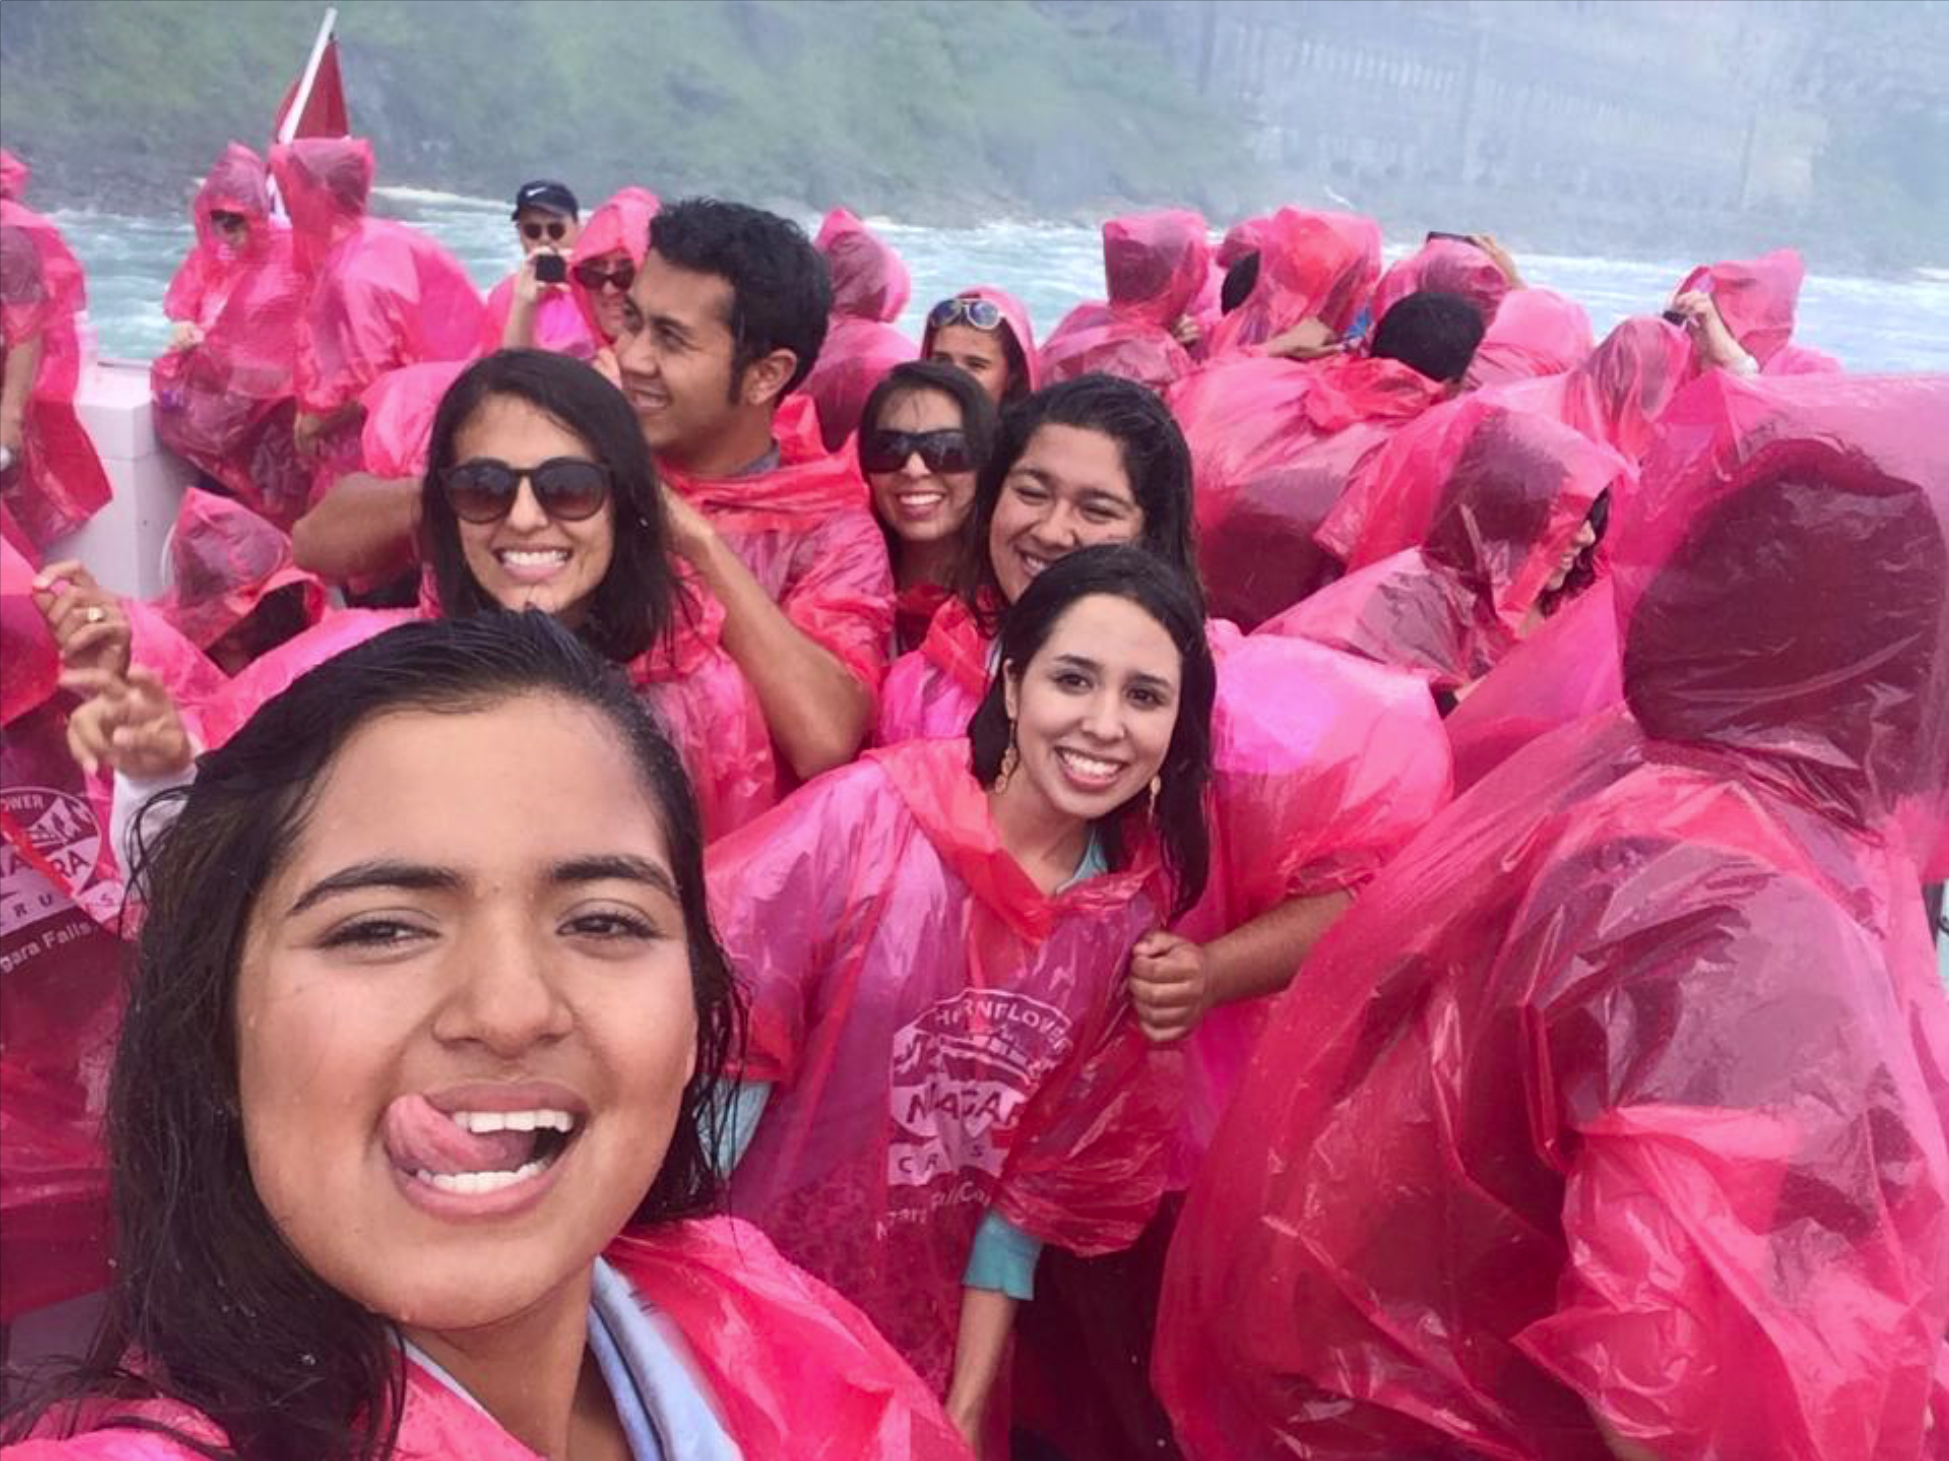 CultureWorks students get wet at the base of Niagara Falls